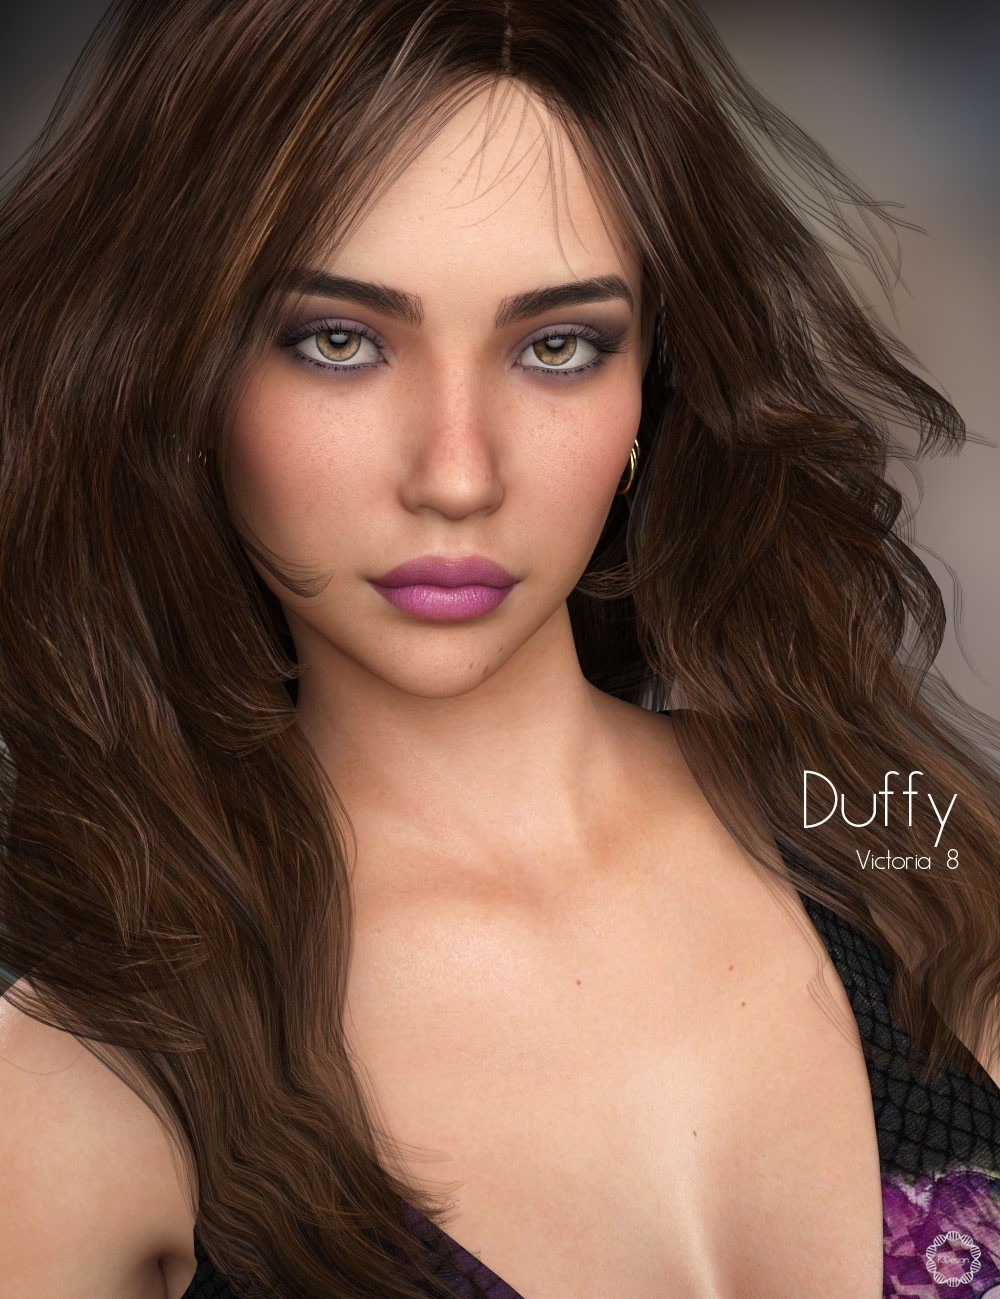 P3D Duffy HD for Victoria 8